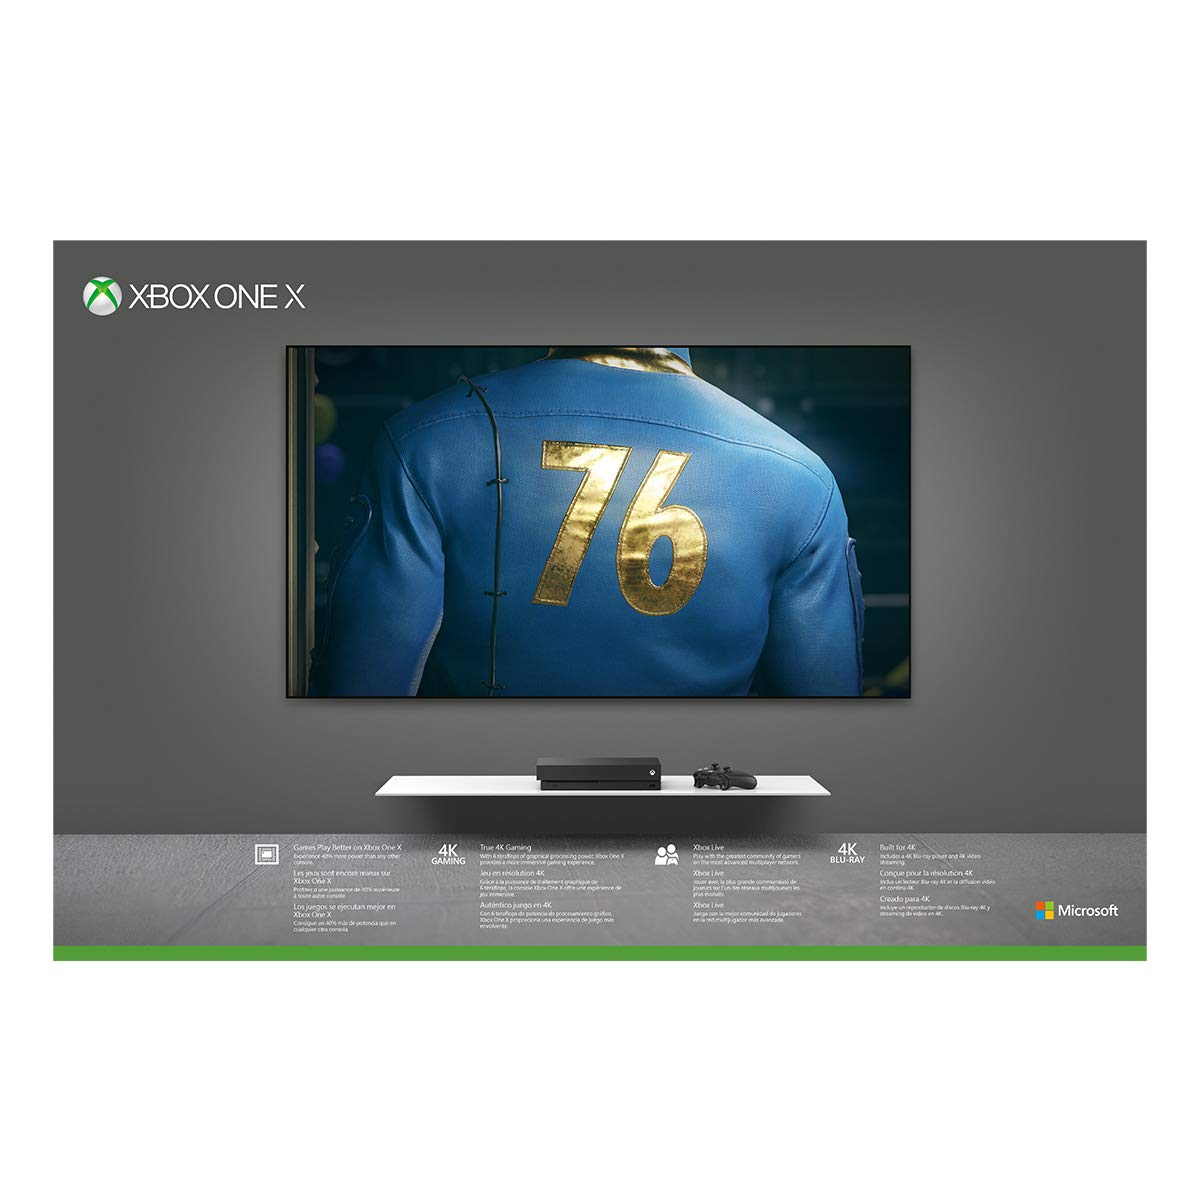 Xbox One X 1TB Console - Fallout 76 Bundle (Discontinued) by Microsoft (Image #8)